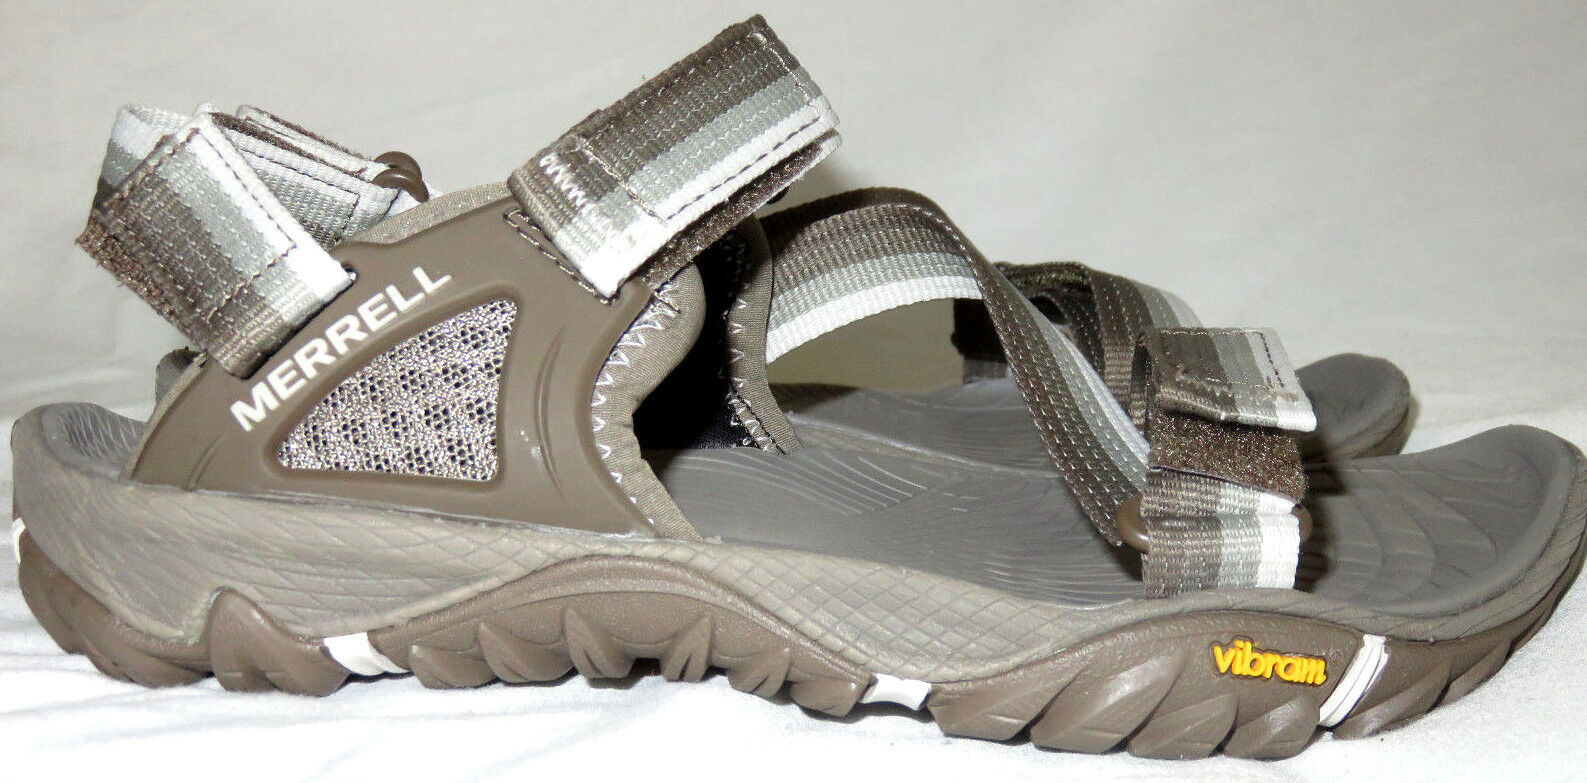 Merrell Aluminum Women's All Out Blaze Web Grey shoes Sandals Size 5 NEW